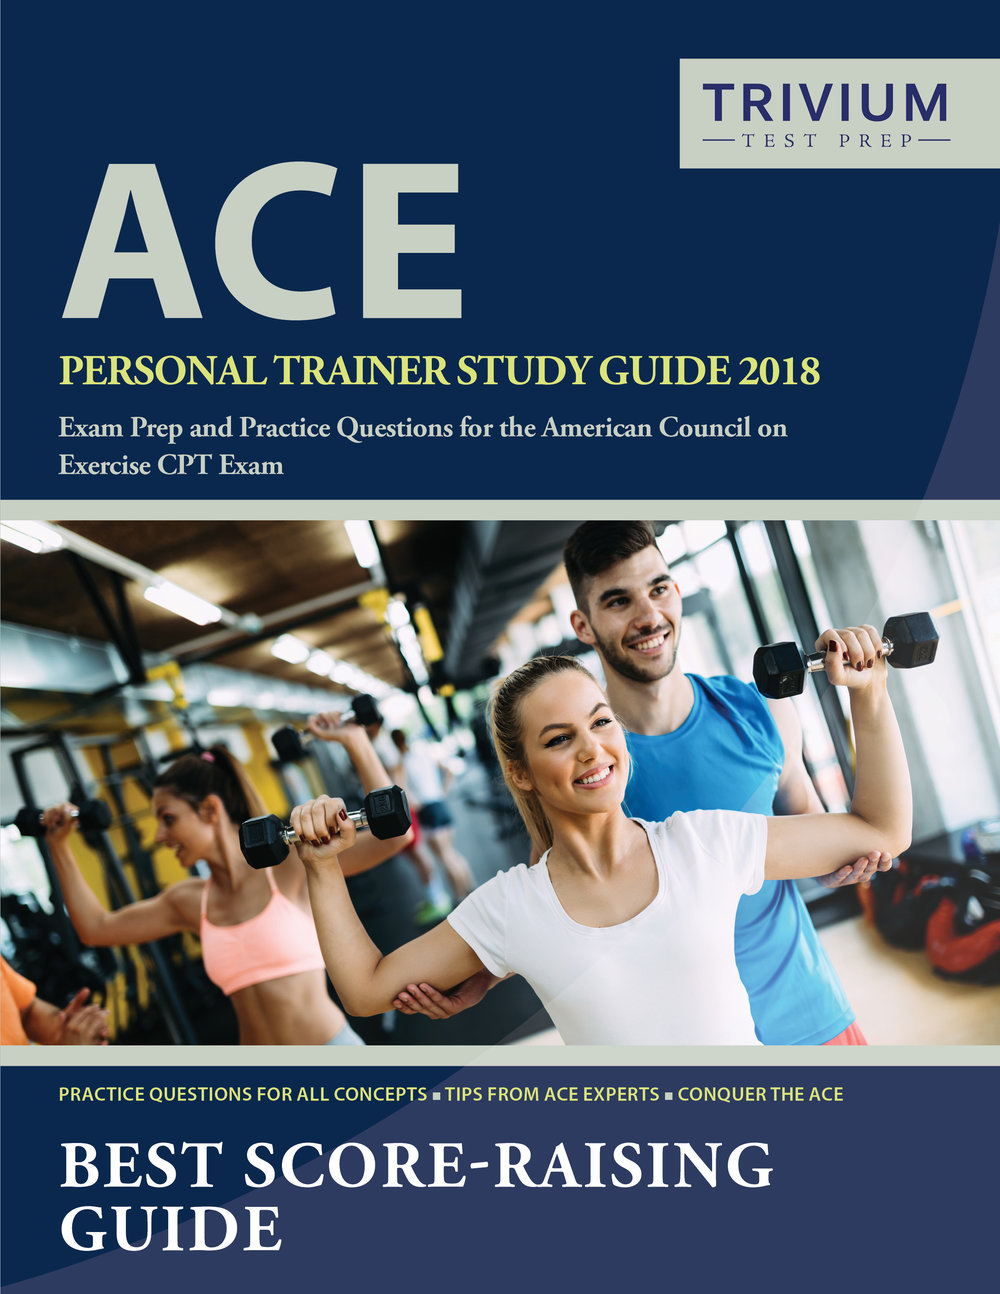 ACE Personal Trainer Study Guide Exam Prep and Practice Test Questions